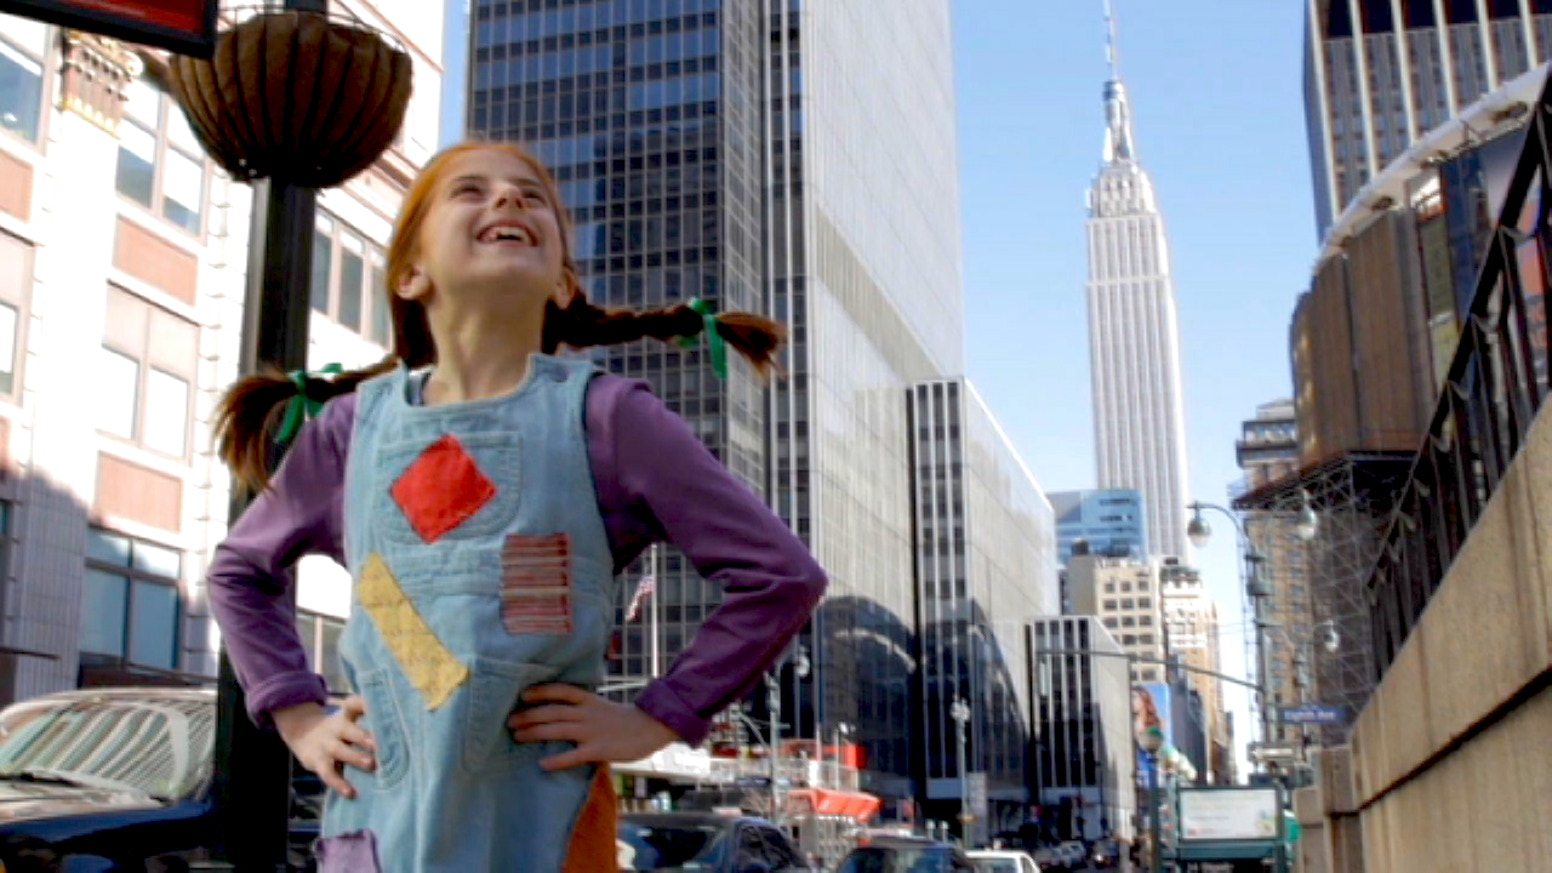 Checking Out Pippi Longstocking From >> Pippi Longstocking The Musical Makes Off Broadway Debut By Laura